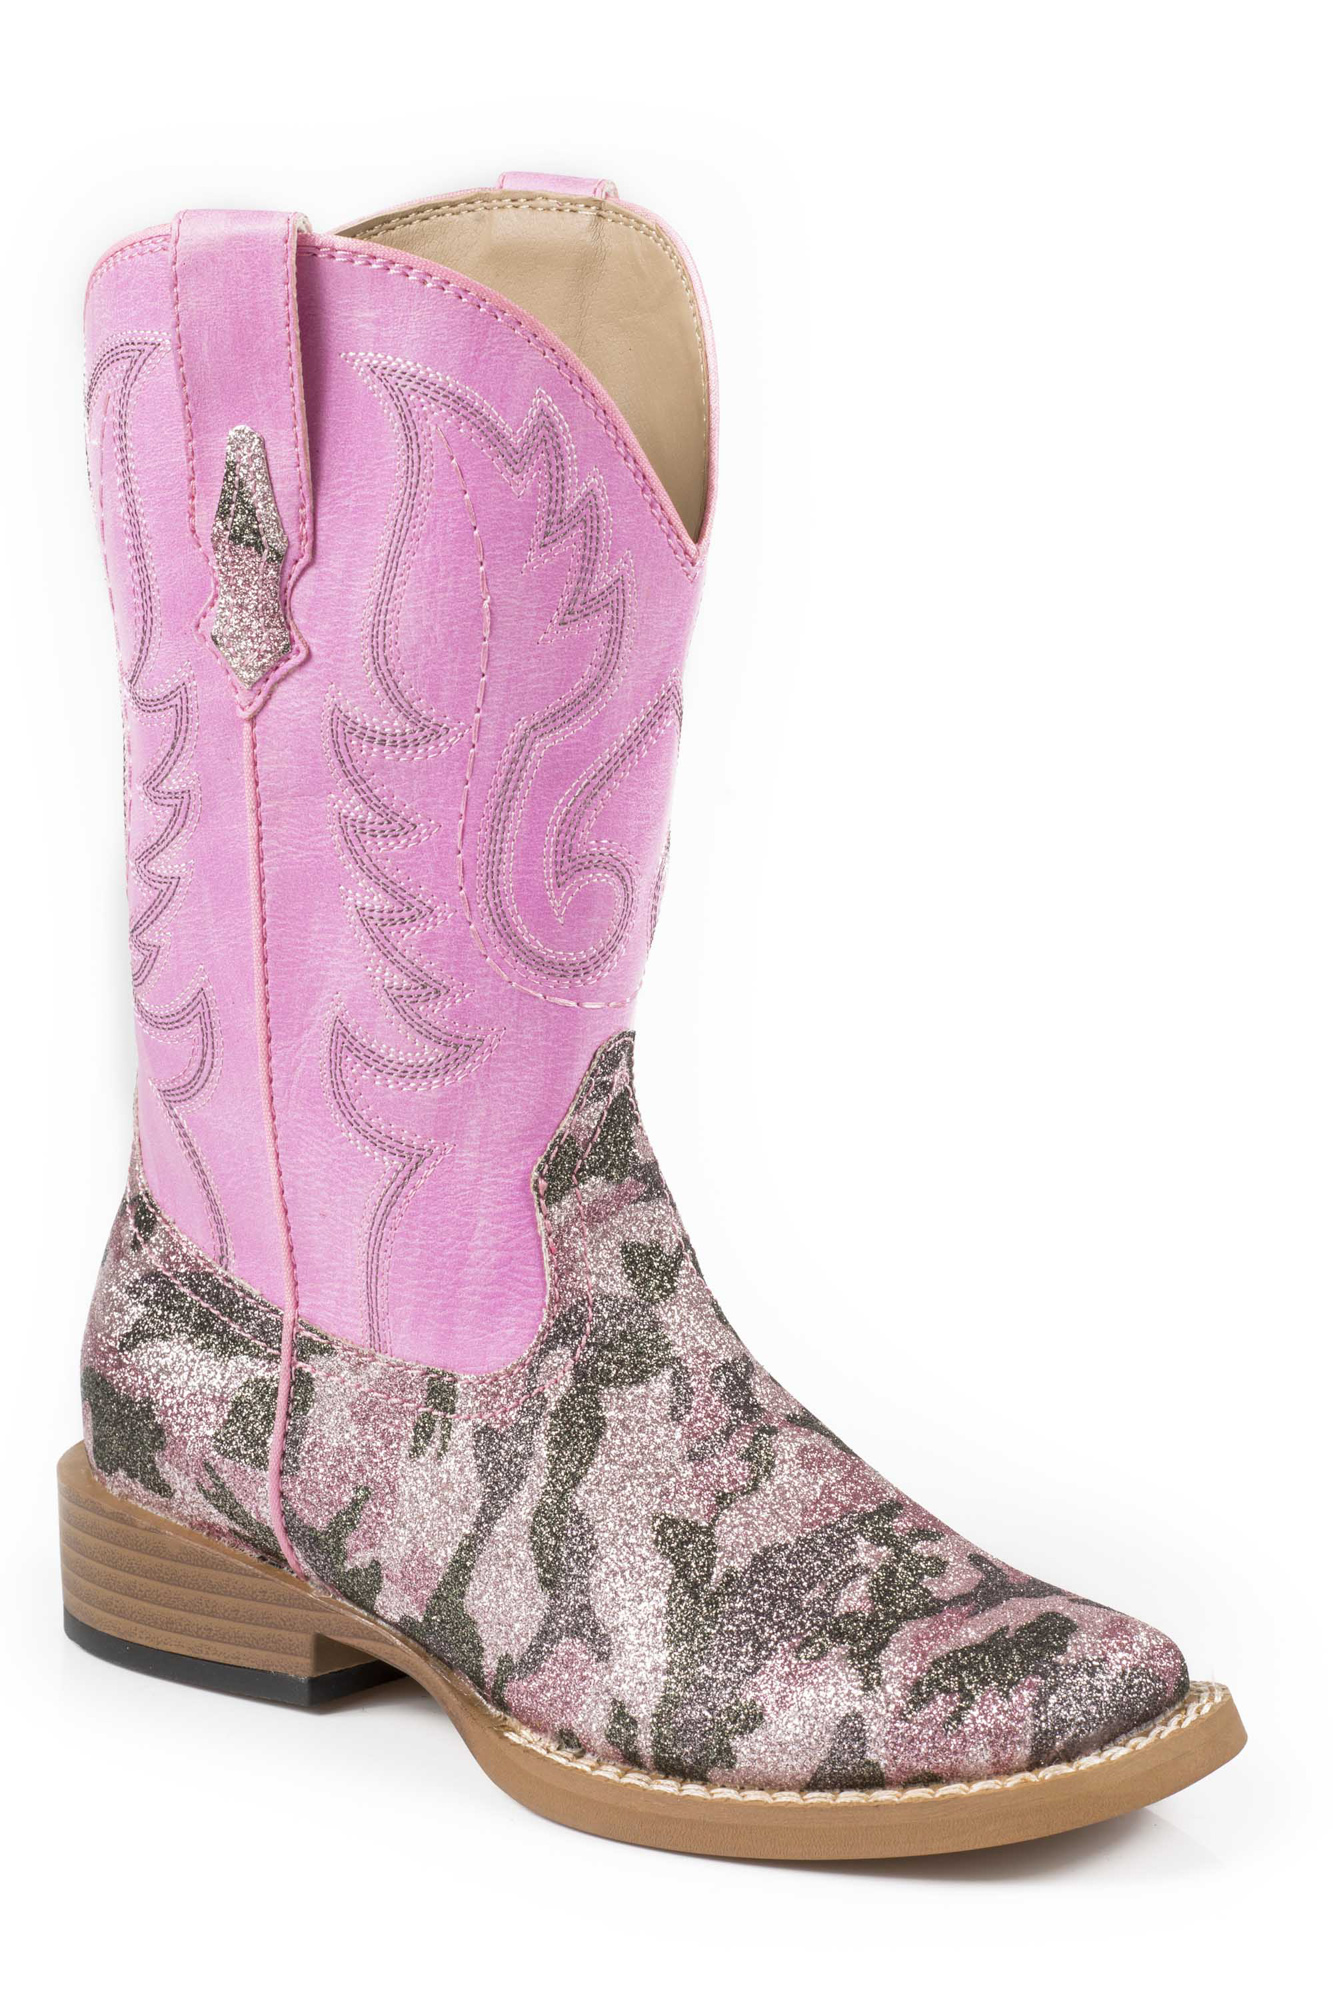 About roper pretty camo ladies pink faux leather glitter cowboy boots